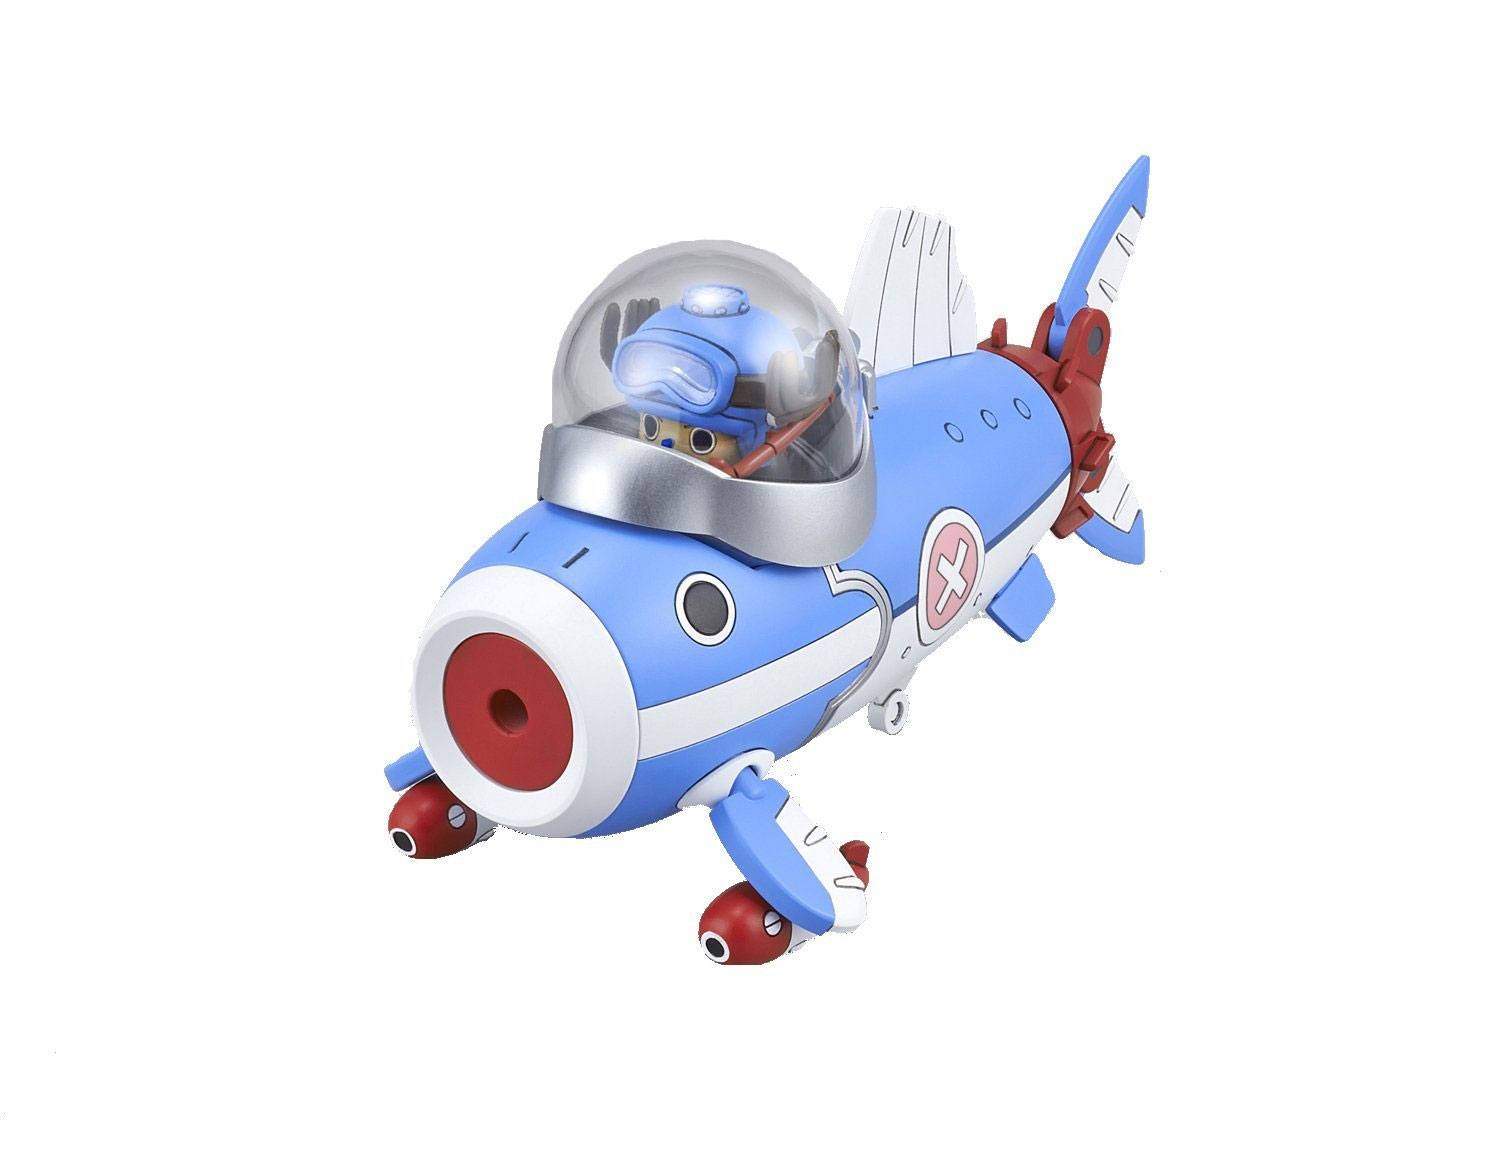 One Piece Chopper Robo Series Plastic Model Kit Chopper Submarine 10 cm